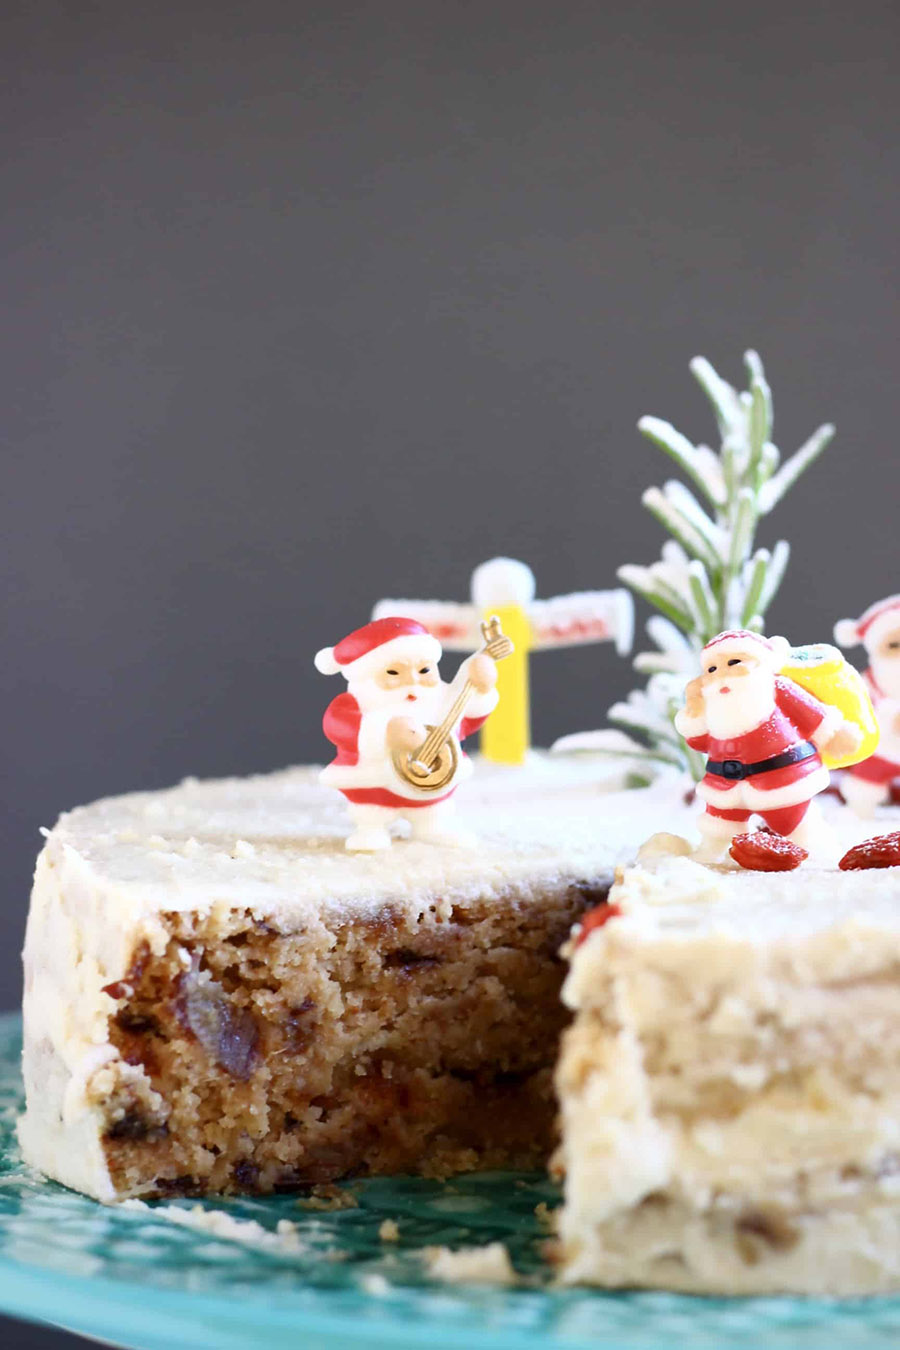 A closeup of an iced fruitcake decorated with miniature santa figurines and dusted with powdered sugar.